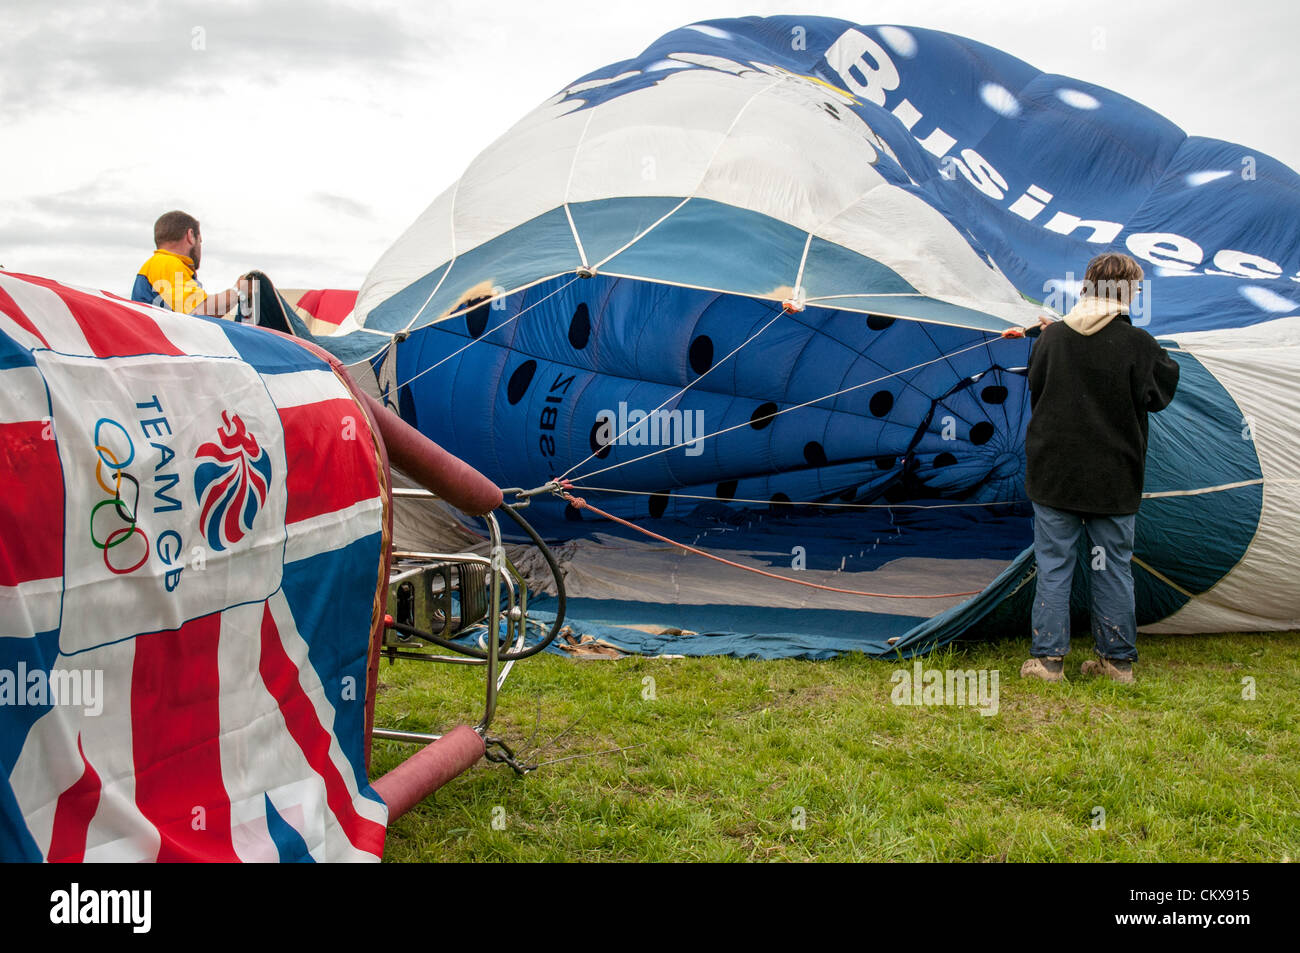 26th Aug 2012. G-SBIZ Cameron Z.90 Snow Business Hot Air Free Balloon is prepared for launch at the Tiverton balloon festival in Tiverton, Devon, UK. Stock Photo